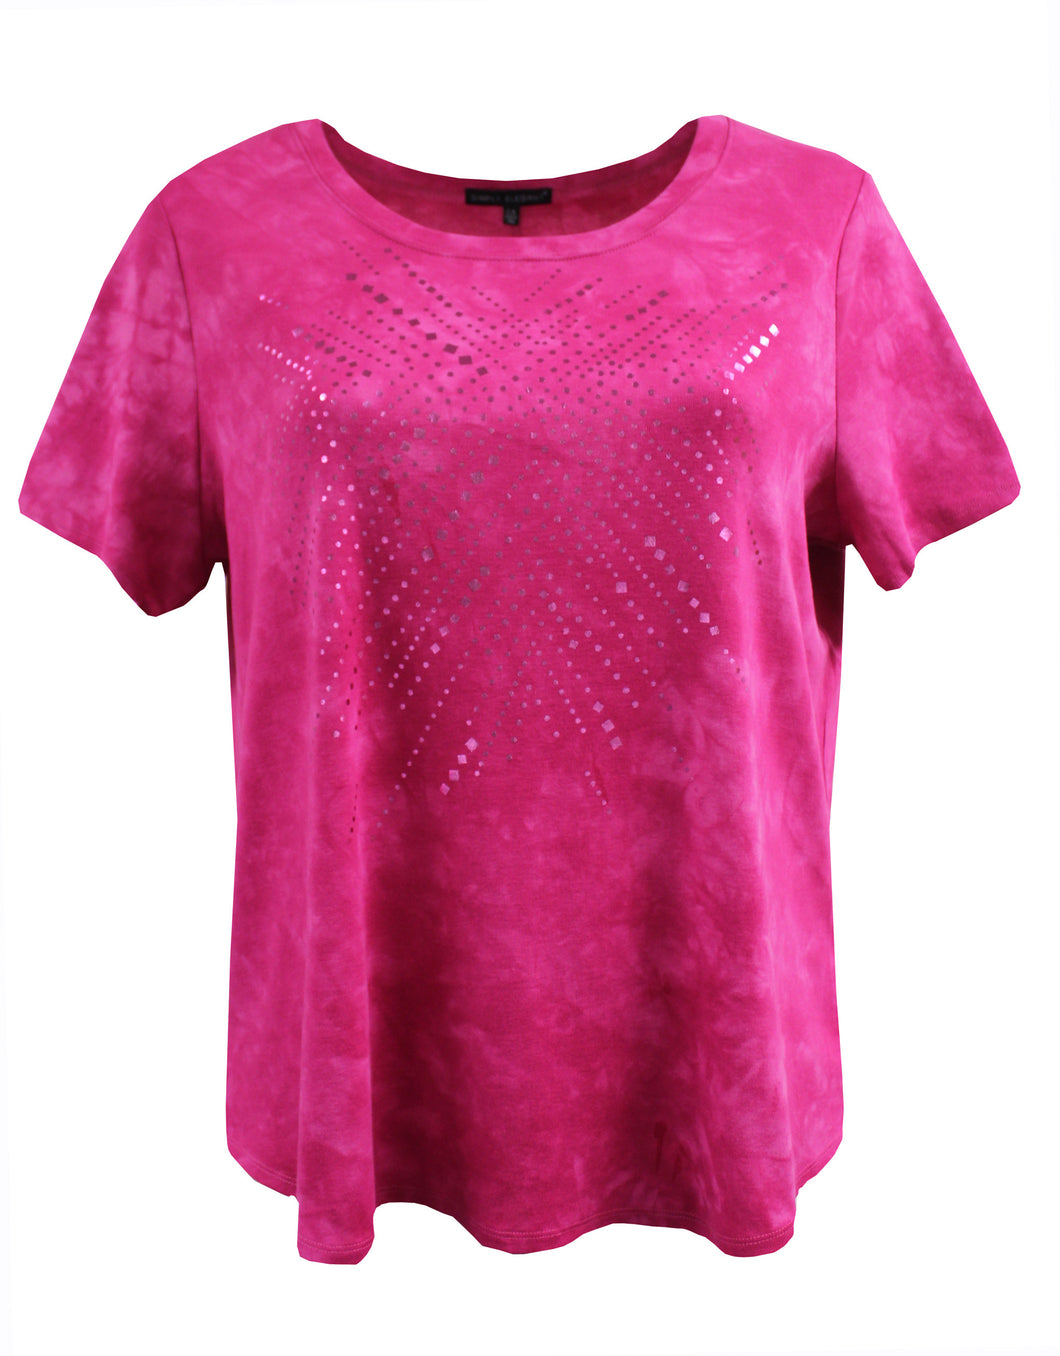 Tie-Dye Tee with Simple Metallic Foil Accent